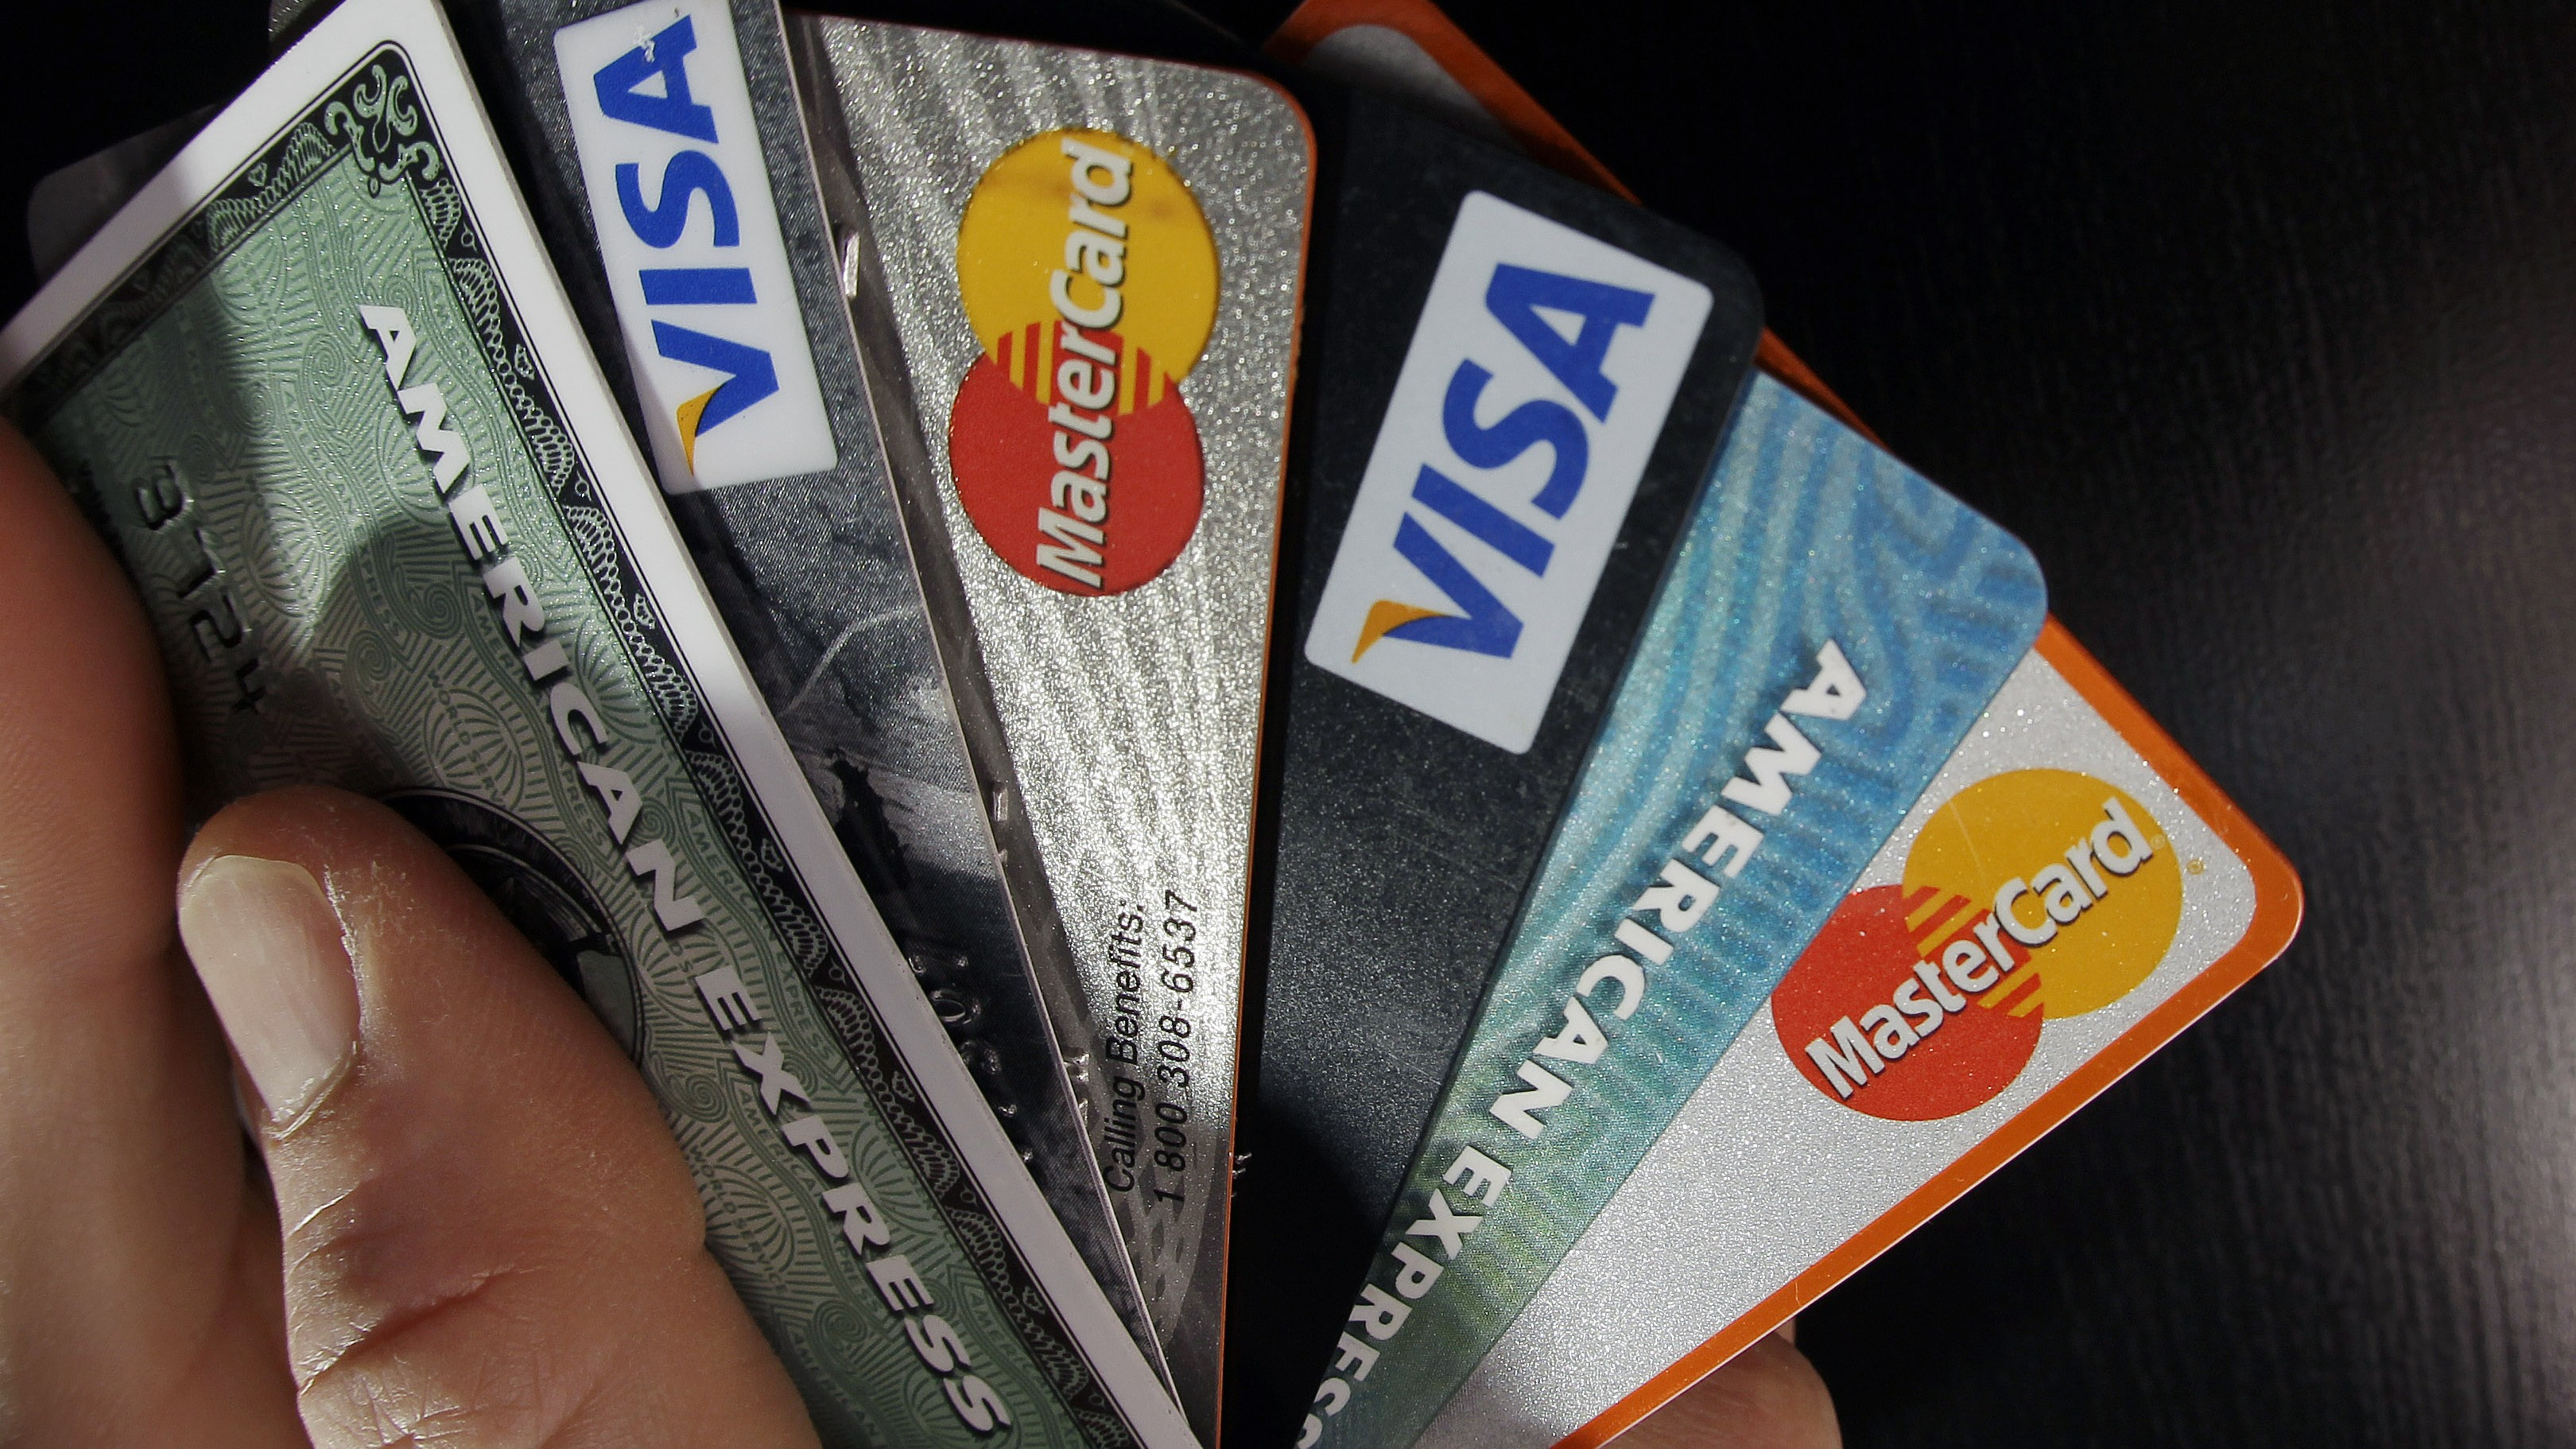 New unhackable credit card uses QSA nanotechnology